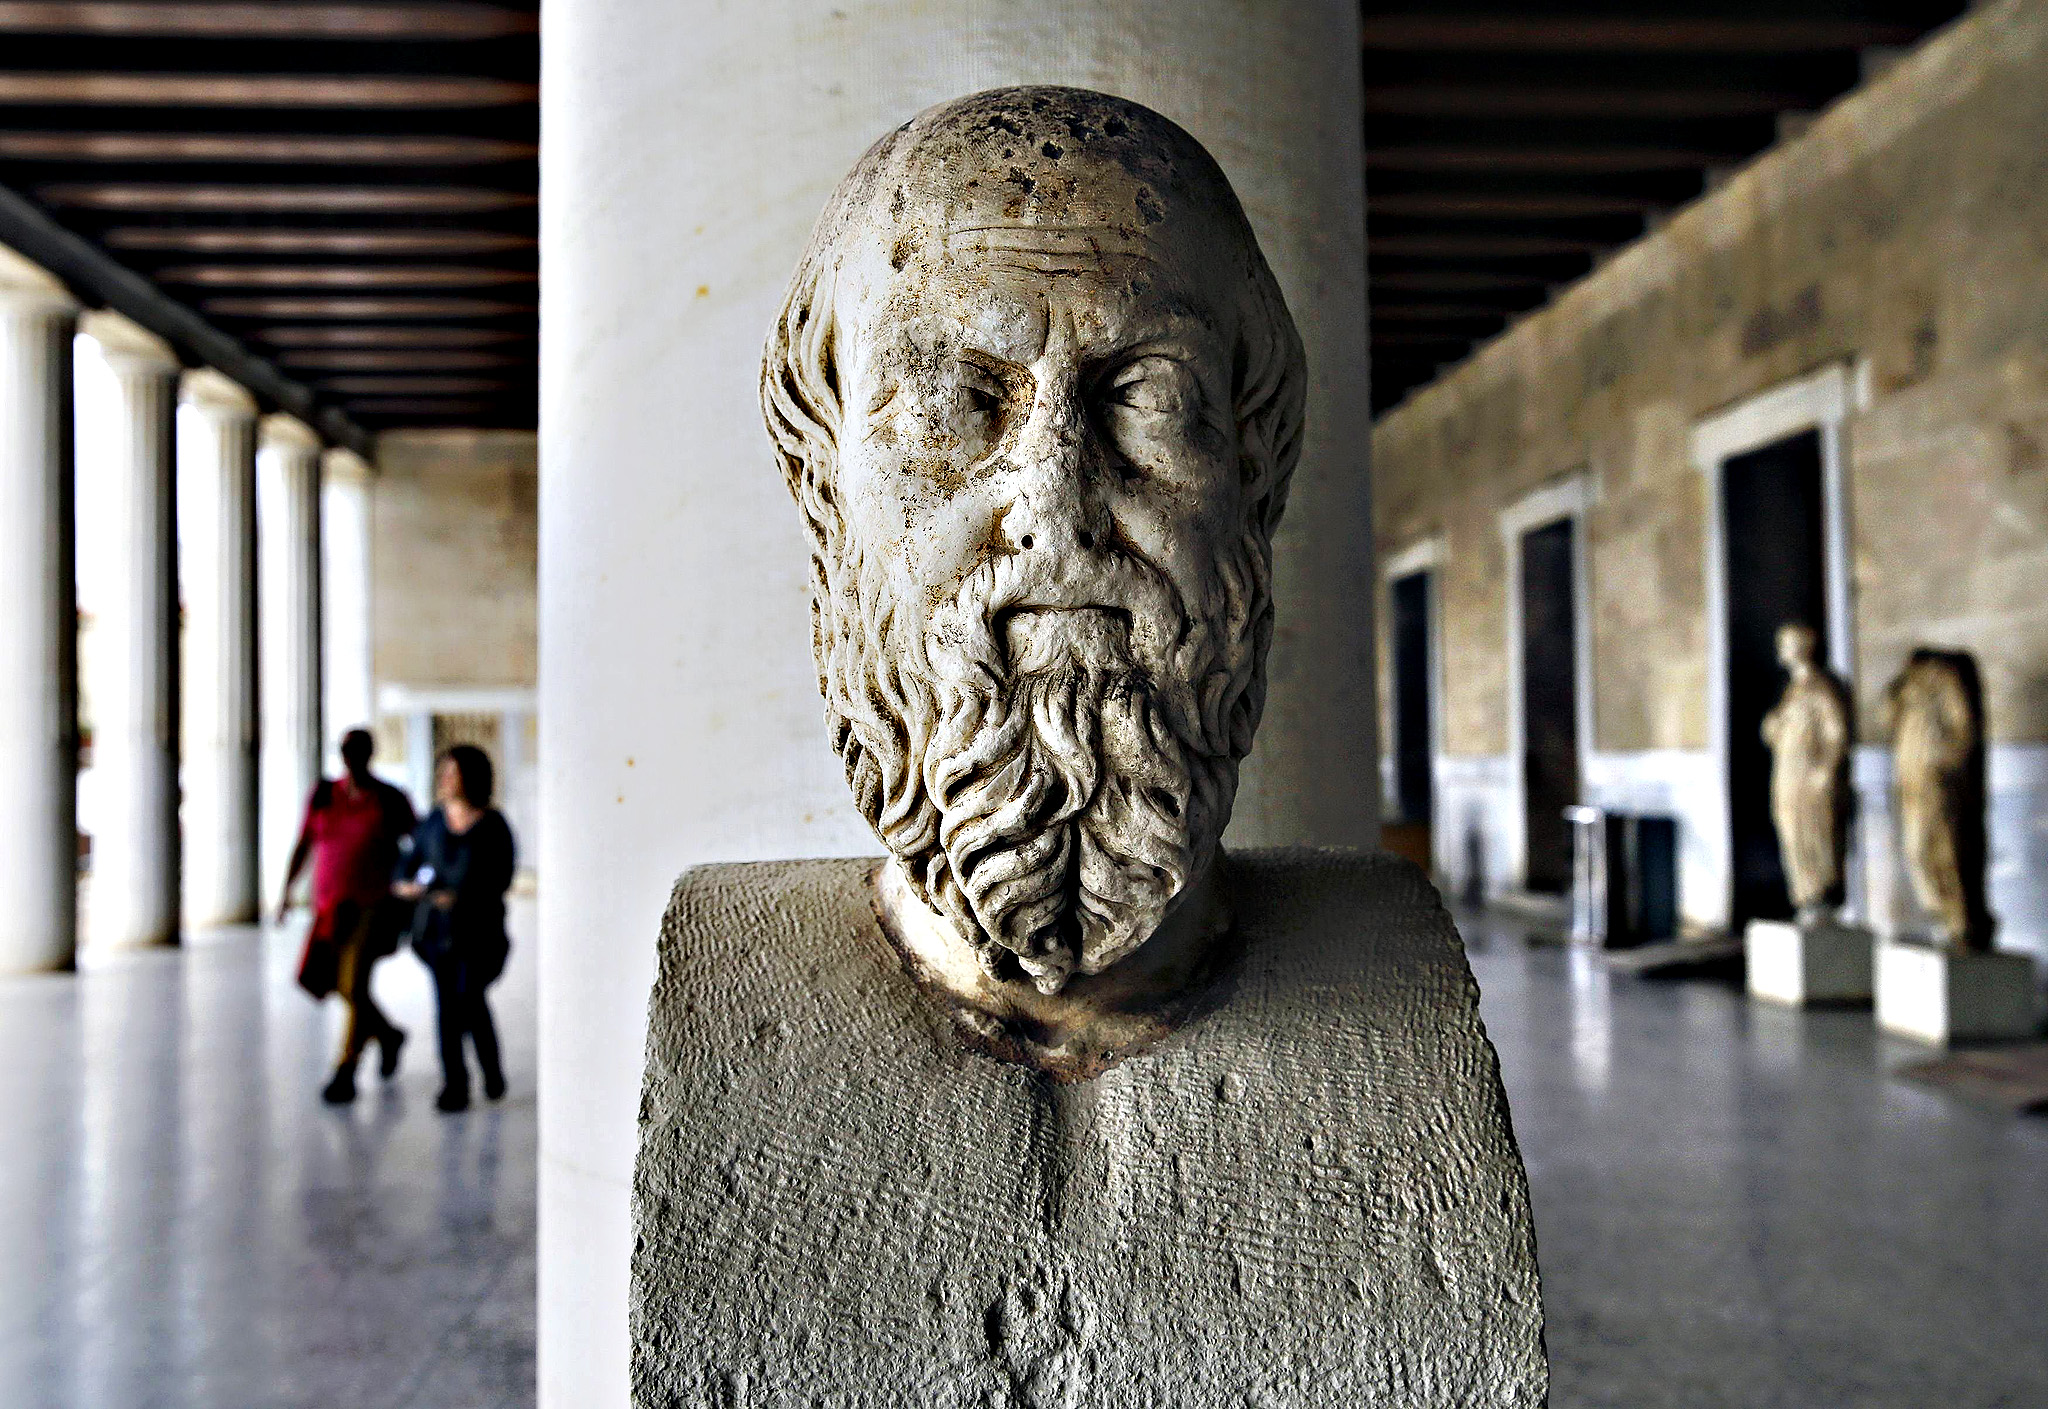 Tourists visit the Attalos arcade in Athens...An ancient marble head of Greek historian Herodotus is seen as tourists walk through the Attalos arcade in Athens February 26, 2015.  Greece's economy is expected to grow this year but faces risks from the government's ability to fulfill a deal with the euro zone and reform fatigue, central bank governor Yannis Stournaras said in his annual report published on Thursday. The arcade was erected by Attalos II King of Pergamon 159-138 BC and the building was reconstructed by the American school of classical studies in Athens under the authority of the Greek Ministry of Education in the reign of King Paul in 1953-1956.